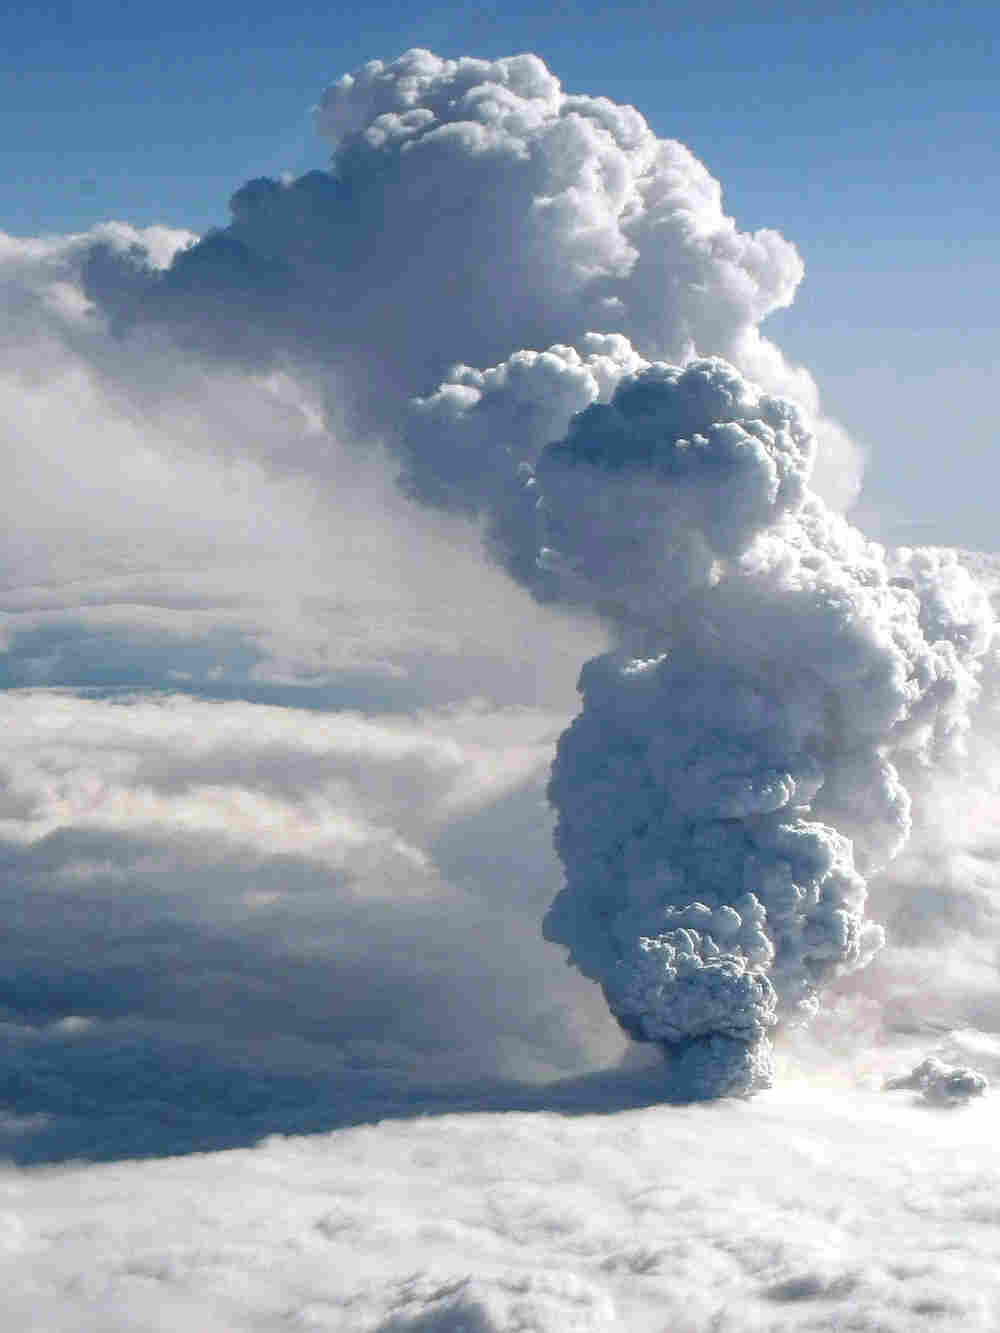 In this image made available by the Icelandic Coastguard taken Wednesday April 14, 2010, smoke and s